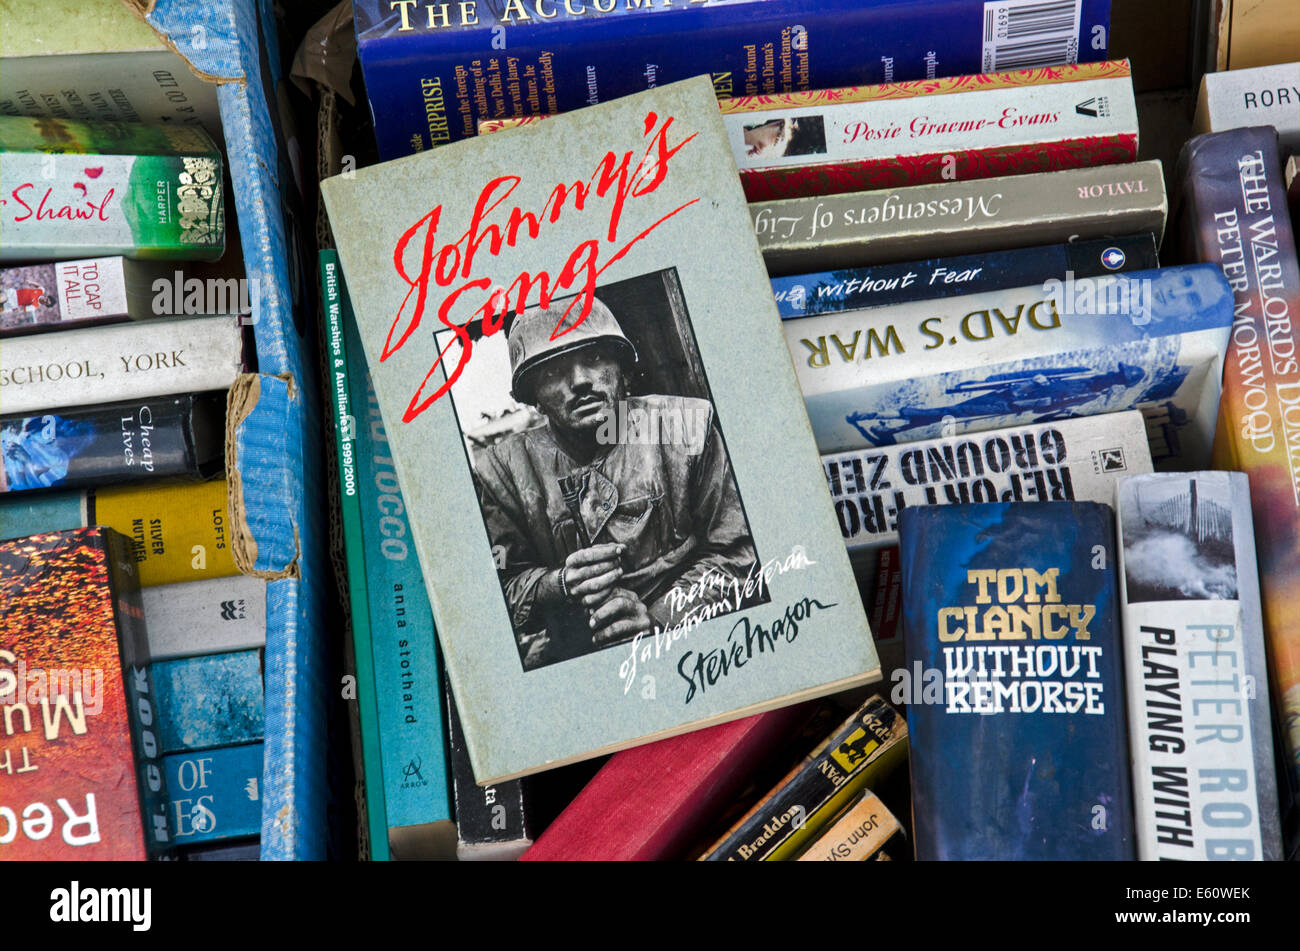 'Johnny's Song' by Steve Mason in a box of books outside a secondhand bookshop in Edinburgh. - Stock Image